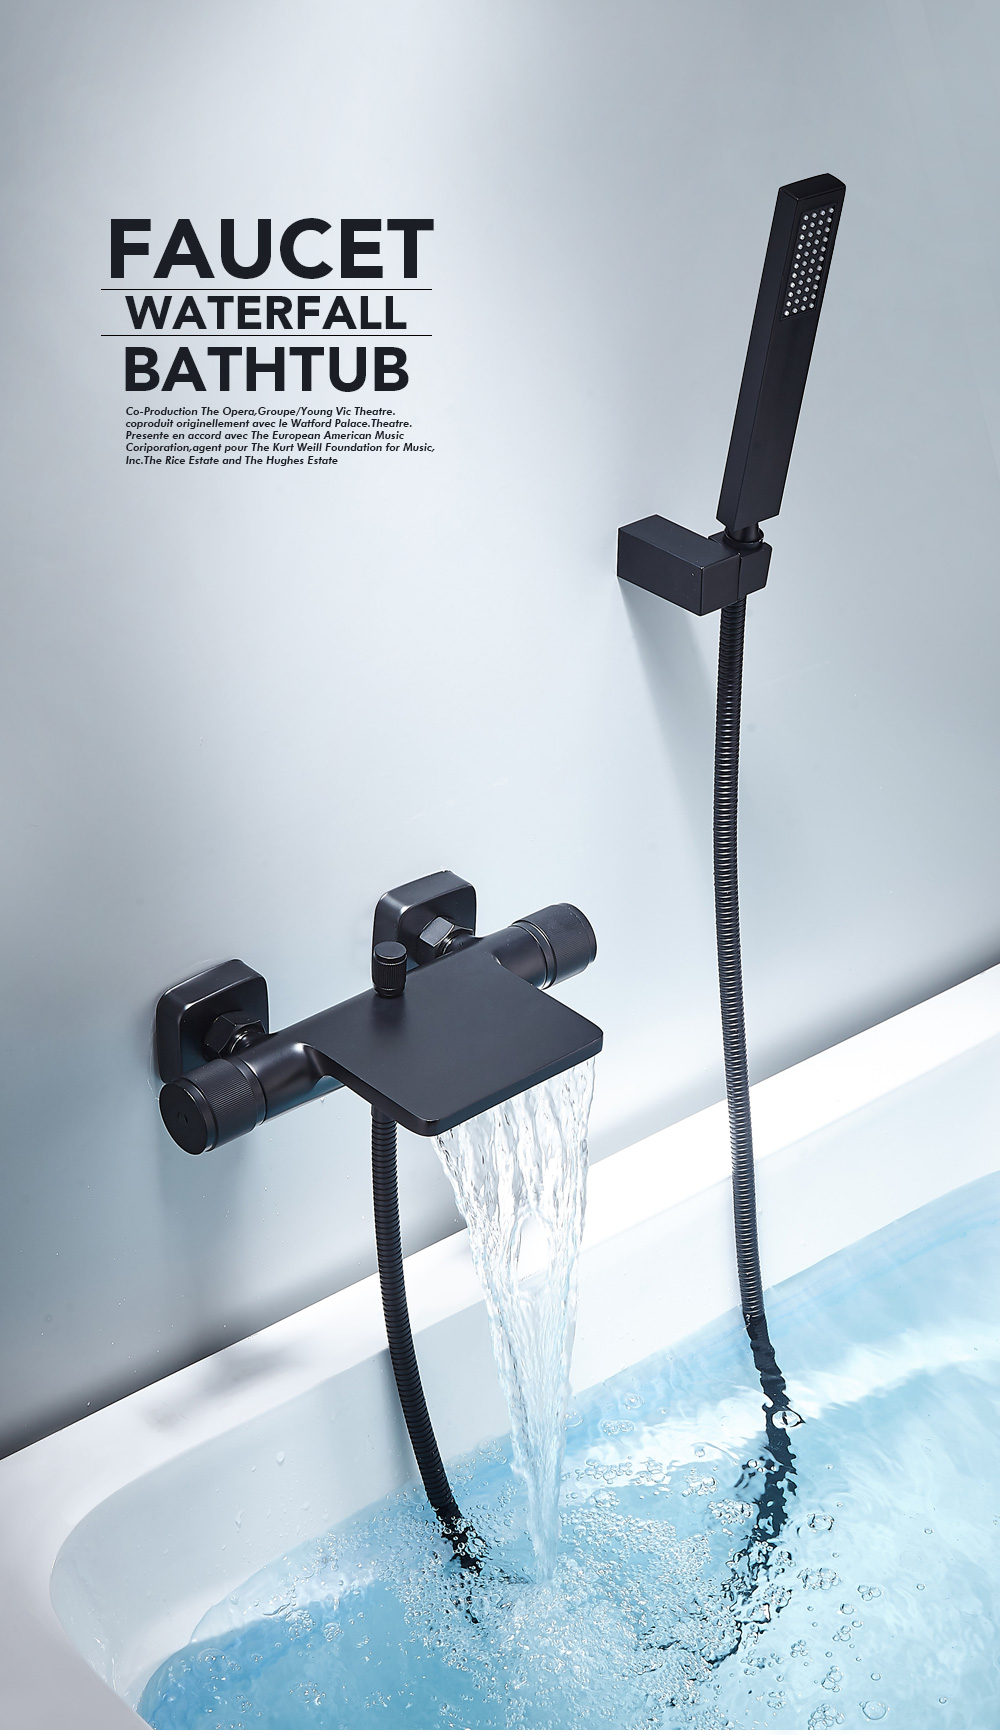 H5c531b0a7e8f426186253aebde4567a2d Bathtub Shower Faucet Mixer Solid Brass Black Wall Mount Shower Faucet With Hand Shower Bathroom Waterfall Bathub Faucet WB1620